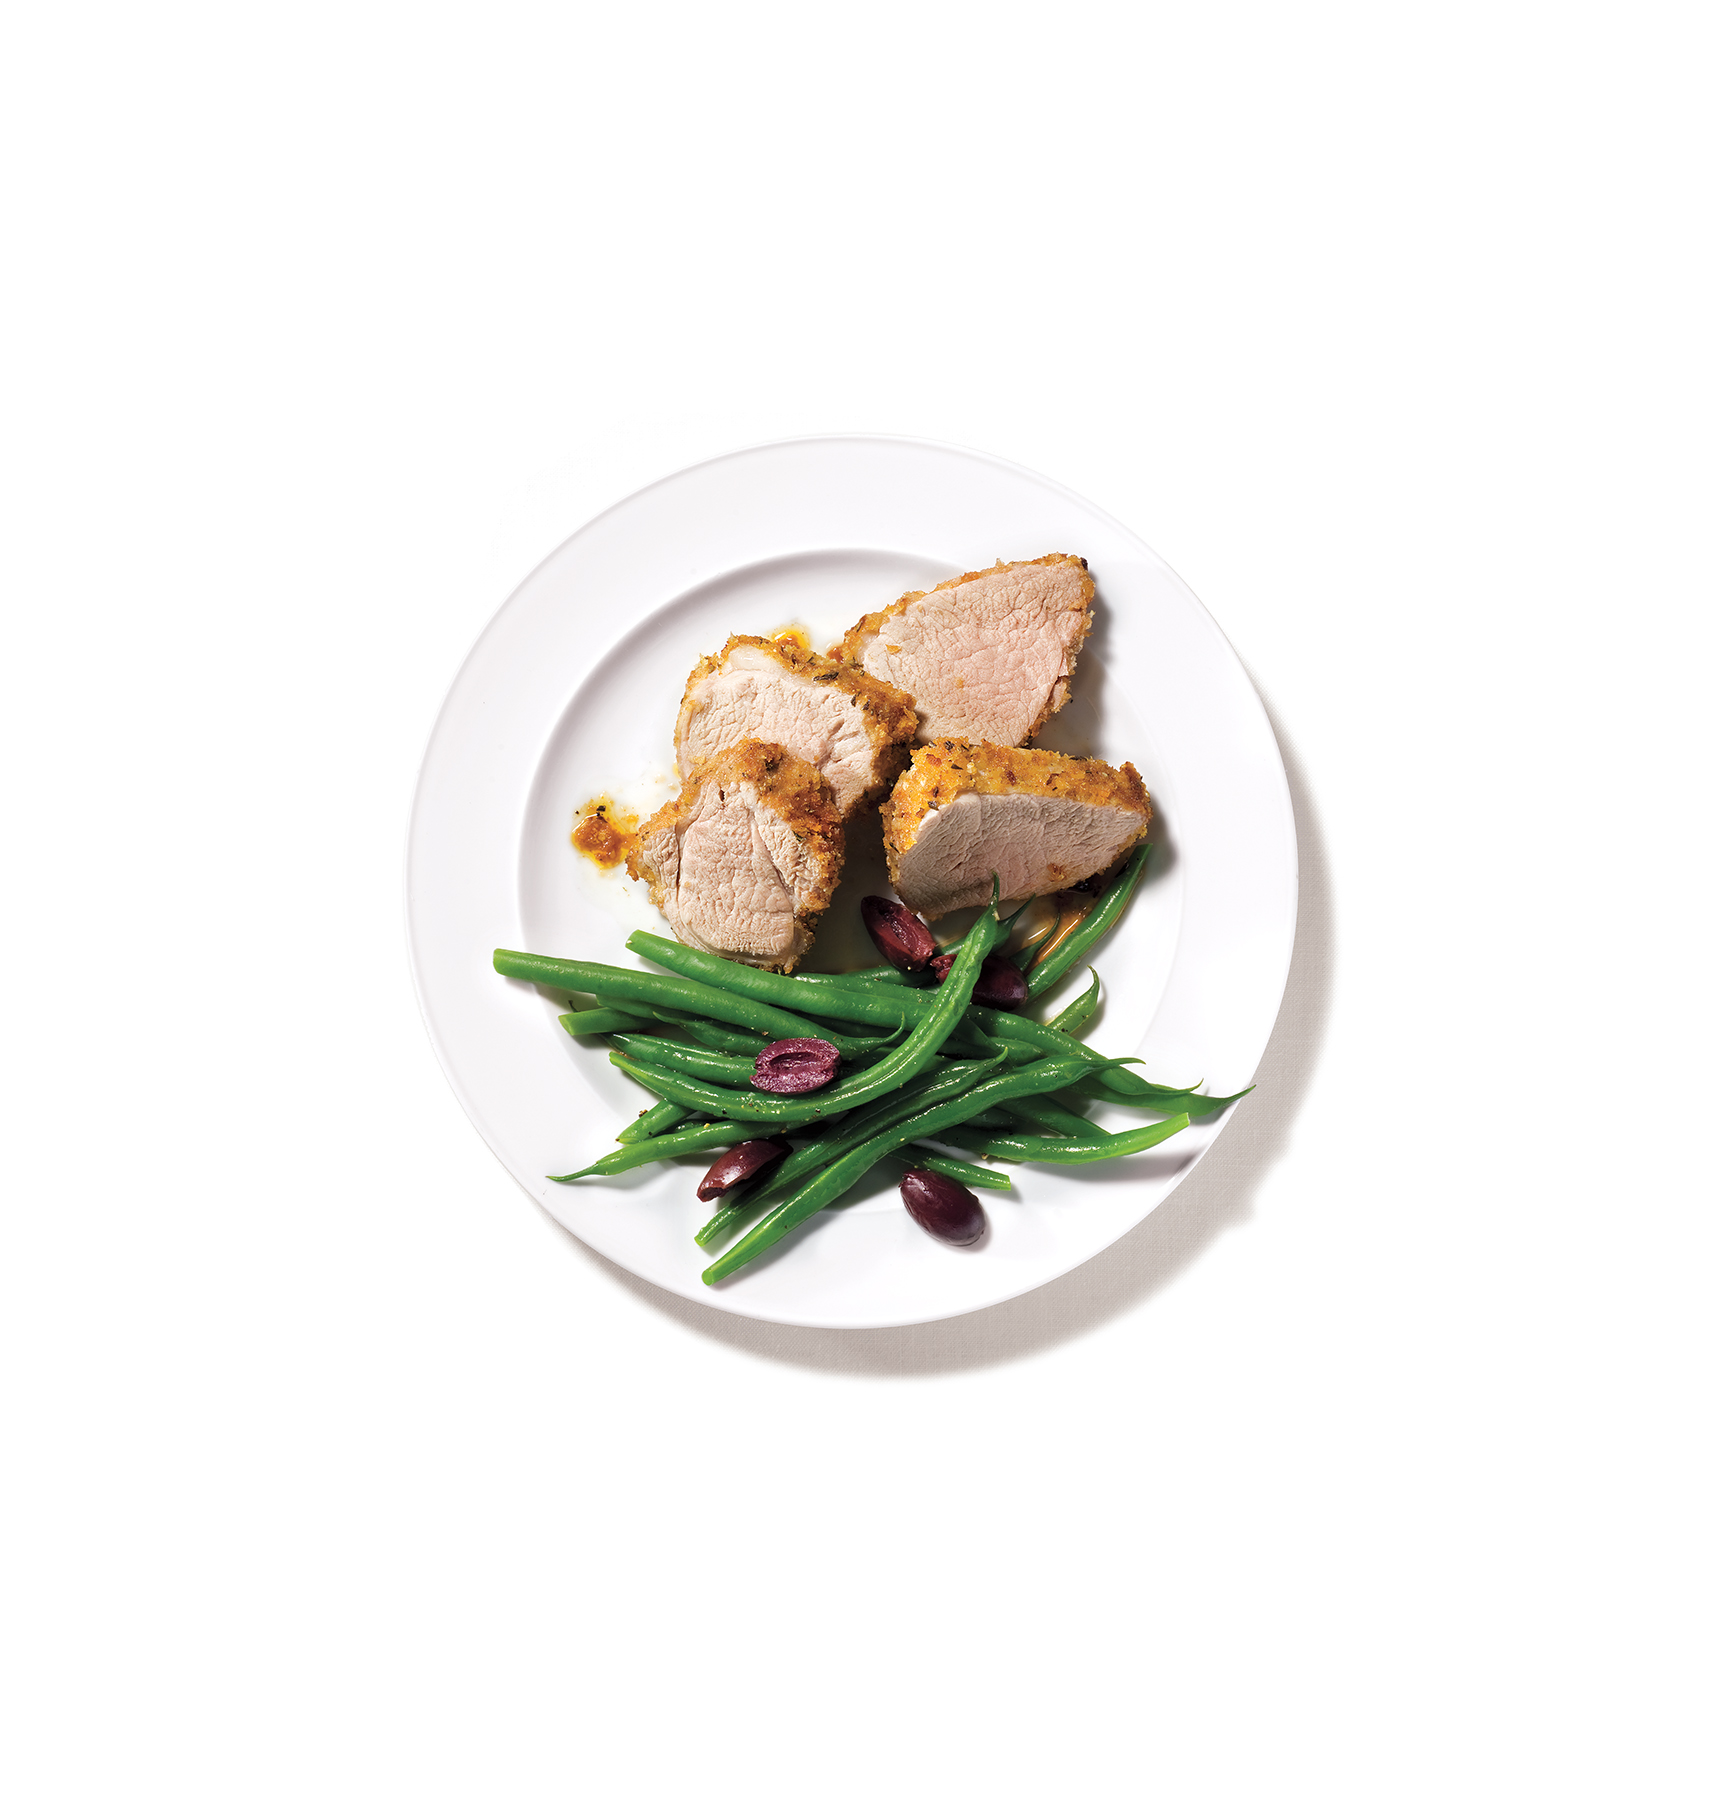 Rosemary-Crusted Pork Tenderloin